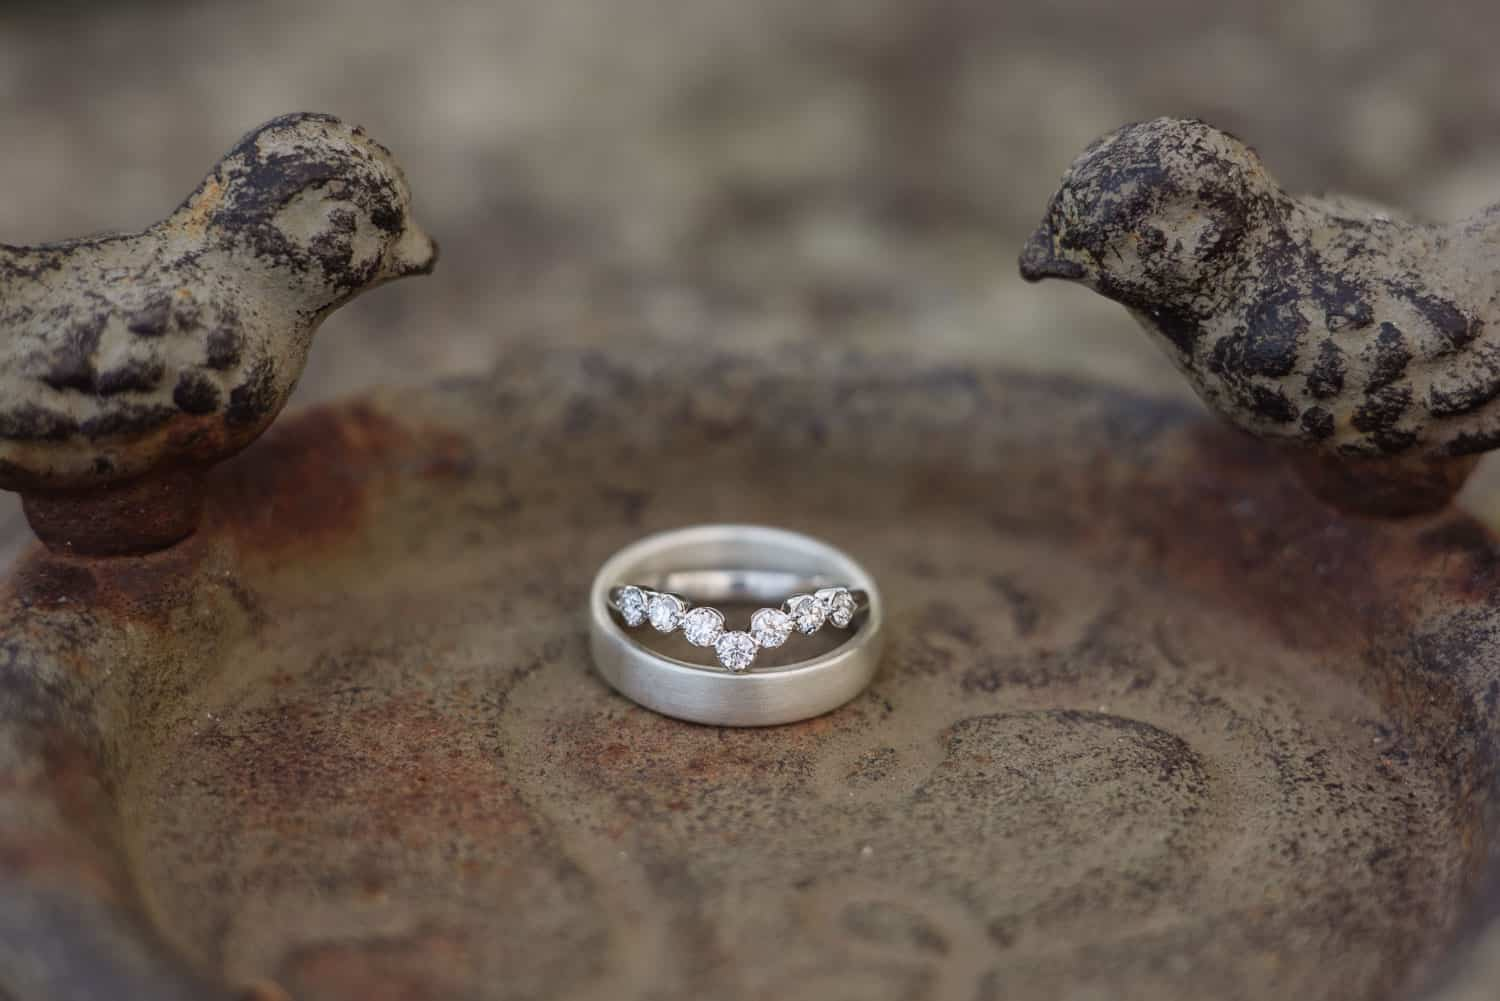 Wedding ring in a birdbath